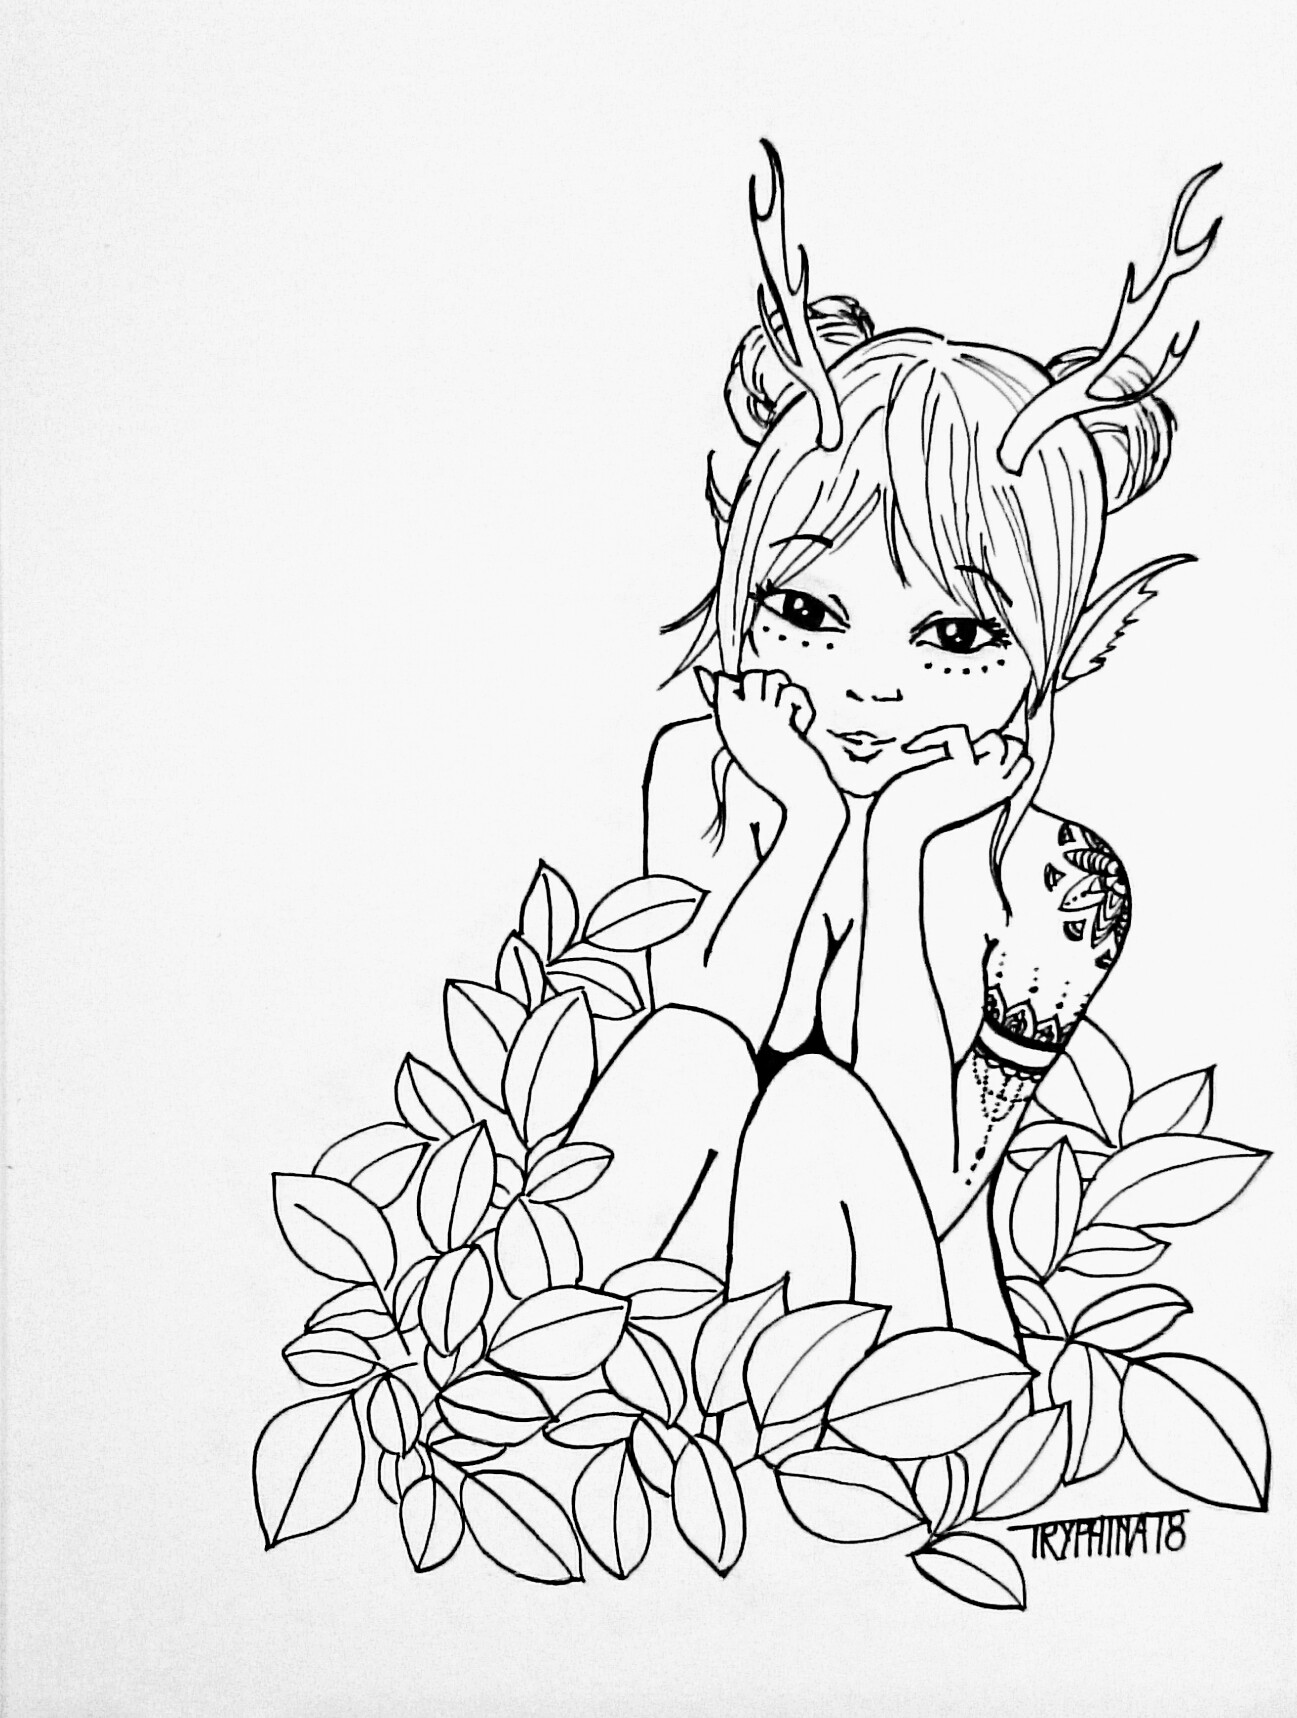 manga style forest spirit, naked, with antlers, sitting in poison ivy.